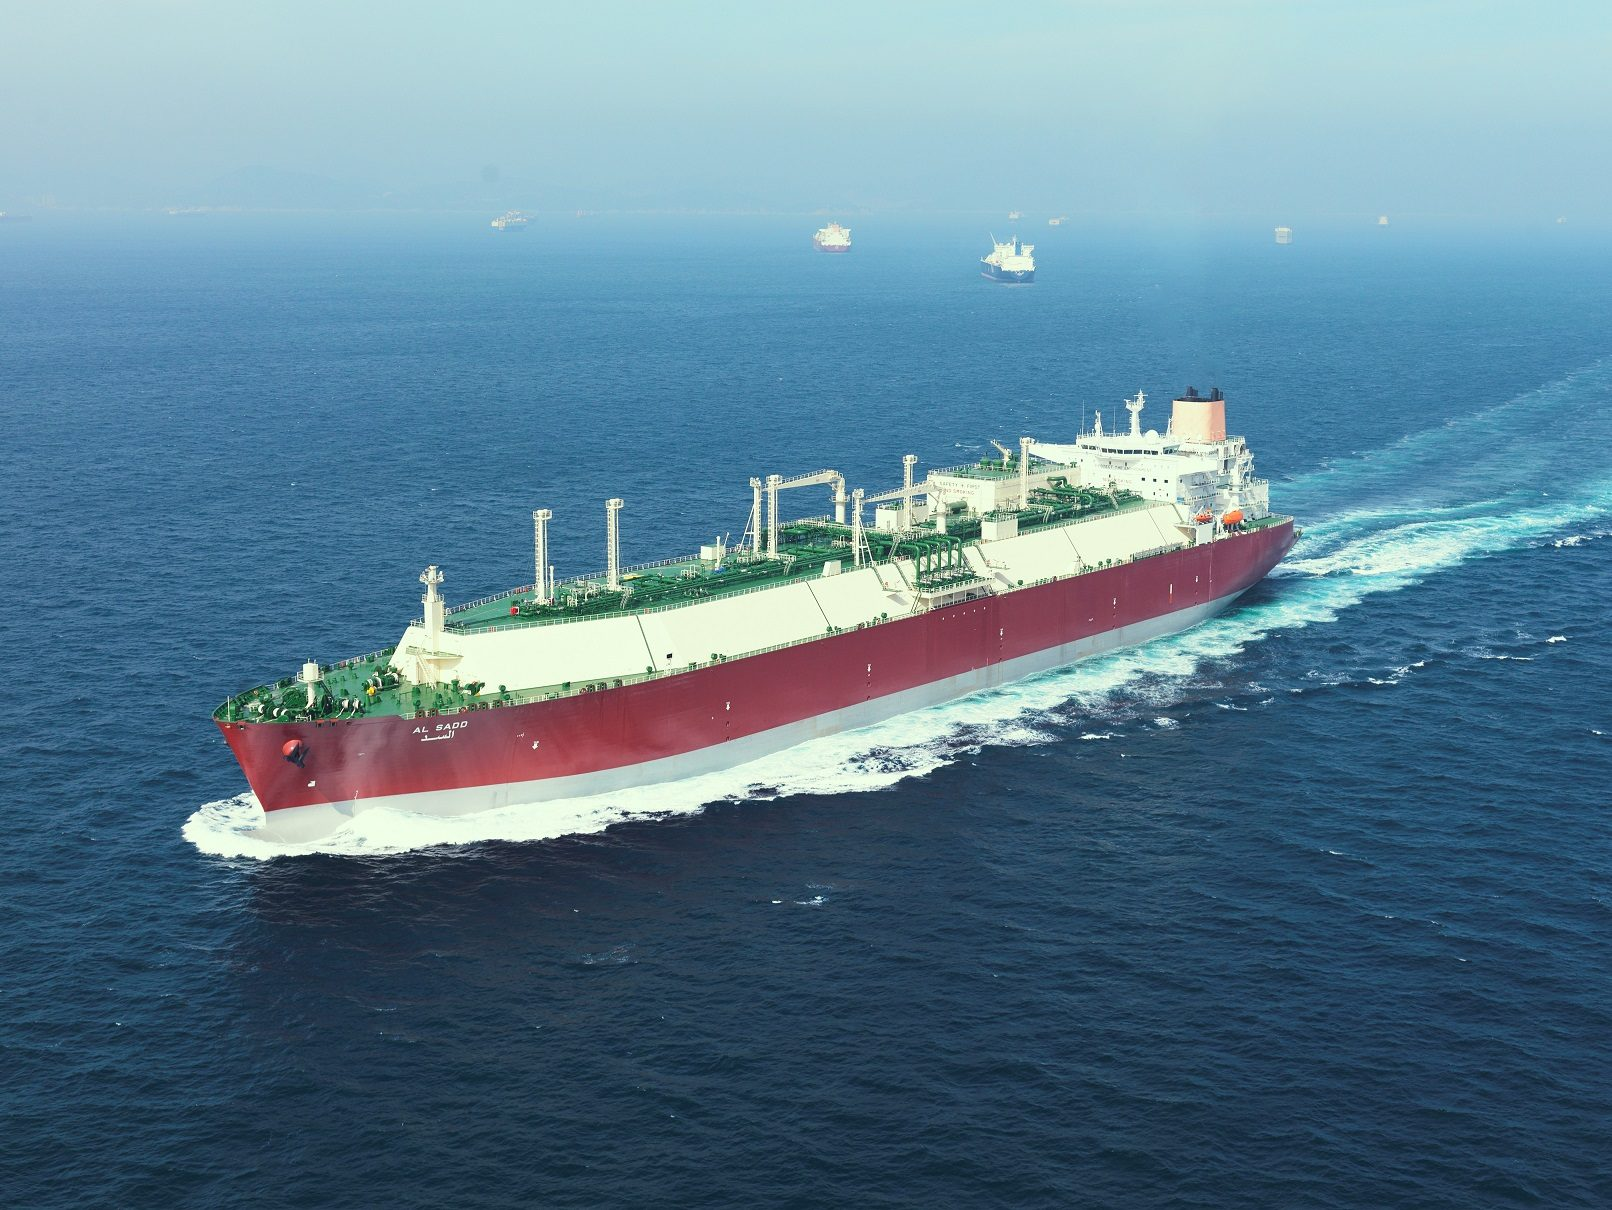 Qatargas Delivers First Q-Max LNG Cargo to KrK LNG Terminal in Croatia